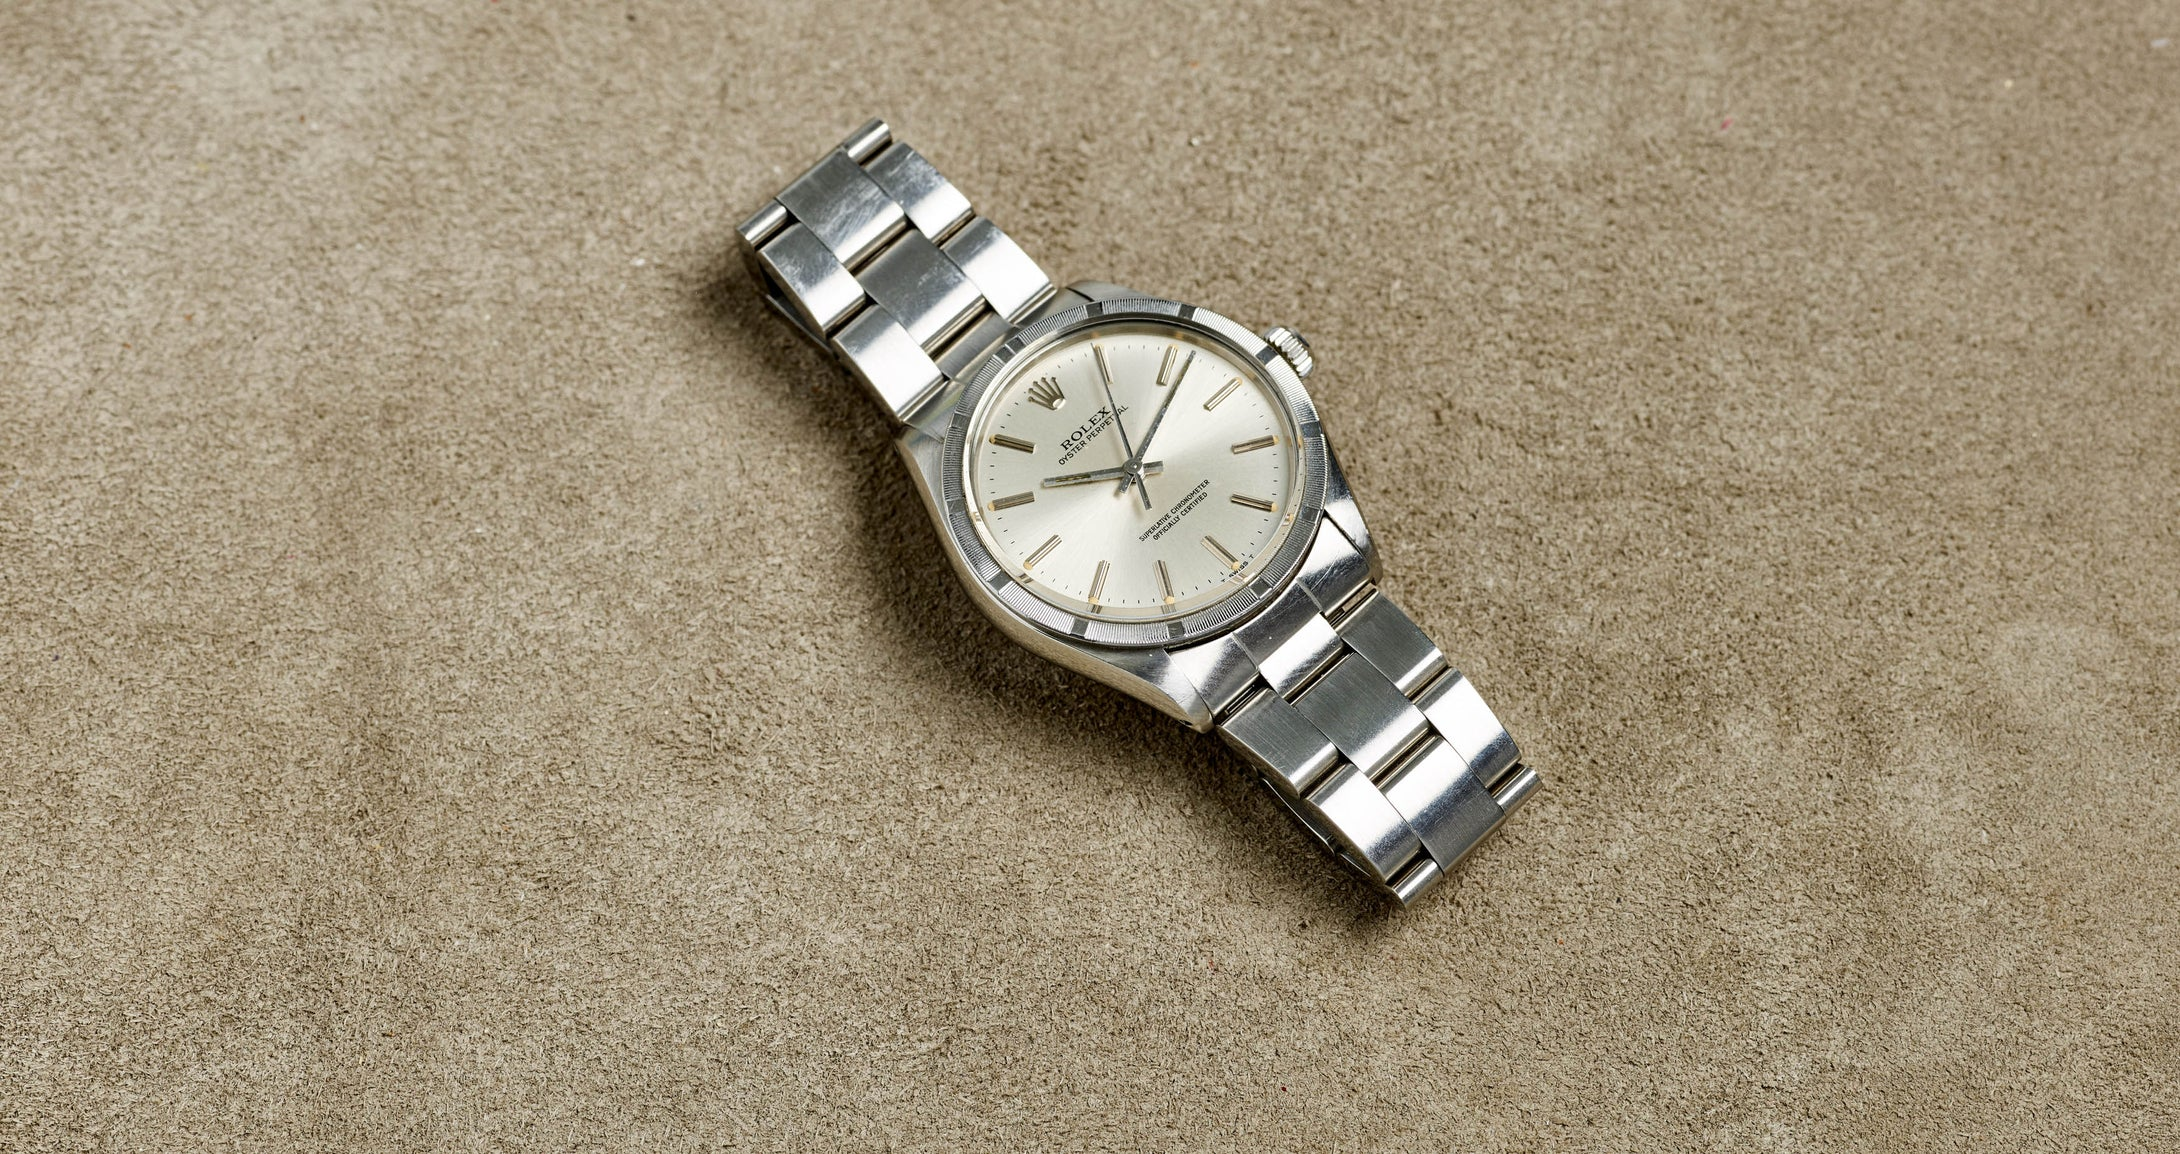 Rolex Stainless Steel Oyster Perpetual Silver Stick Vintage Watch | Veralet